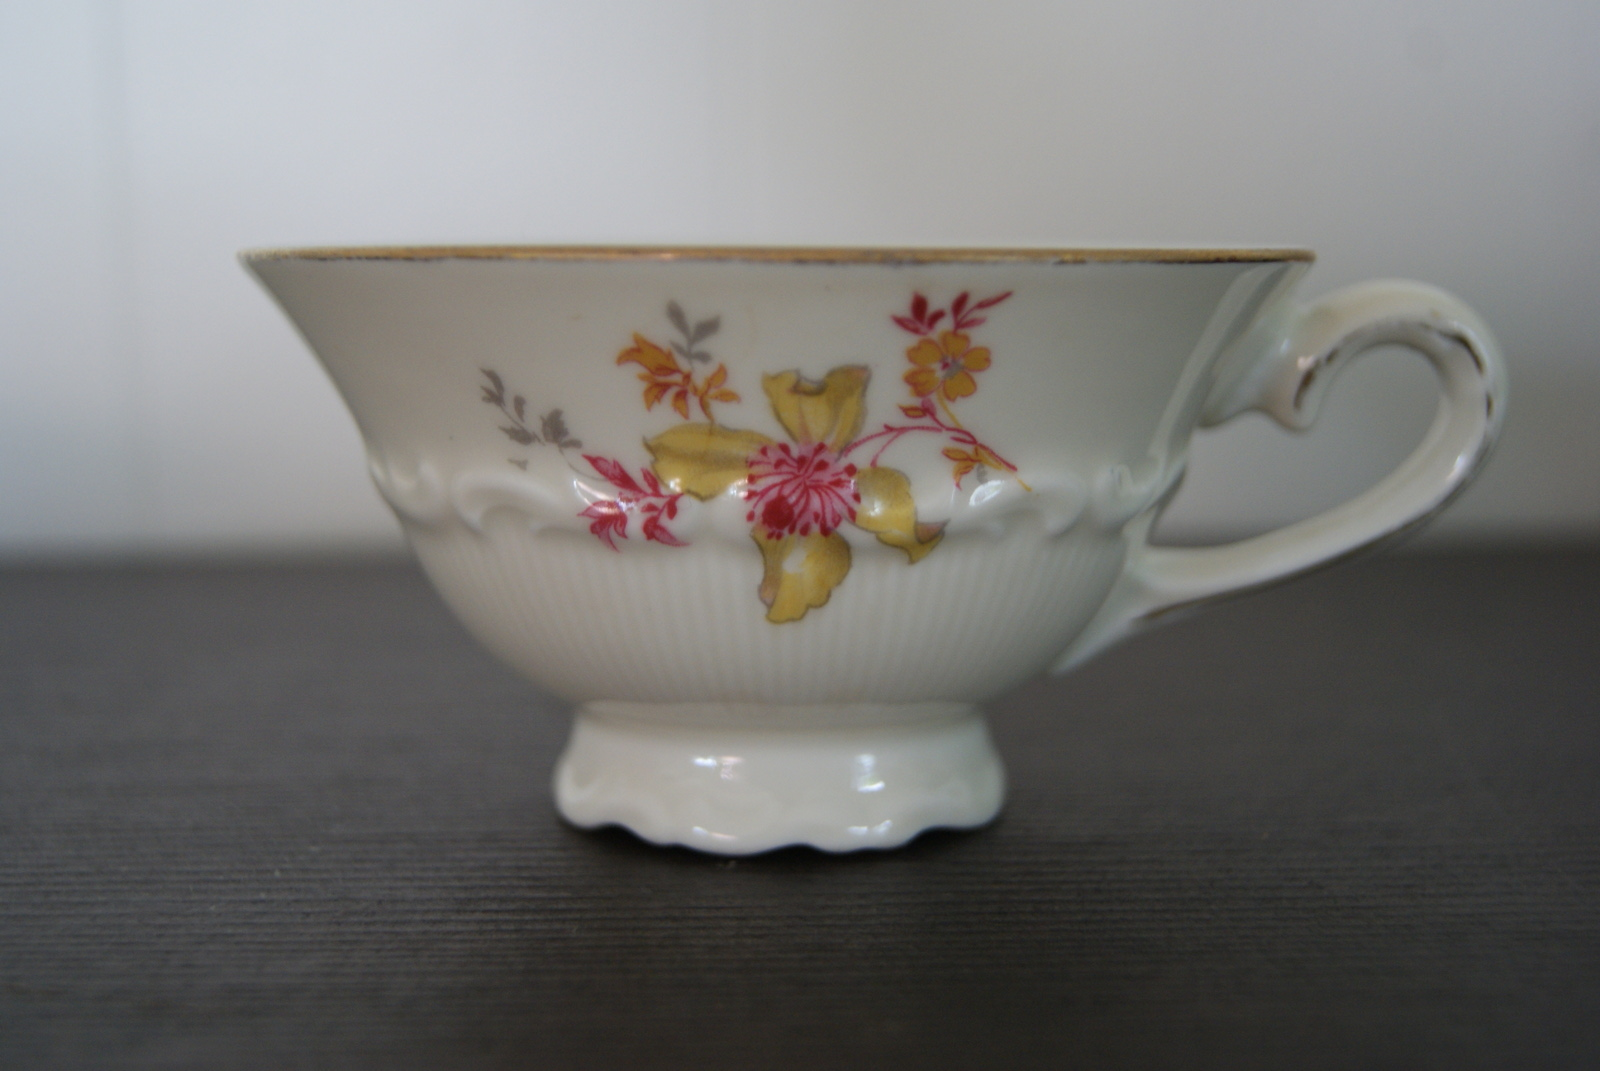 Sorau tea cup with saucer and plate with yellow and red flowers